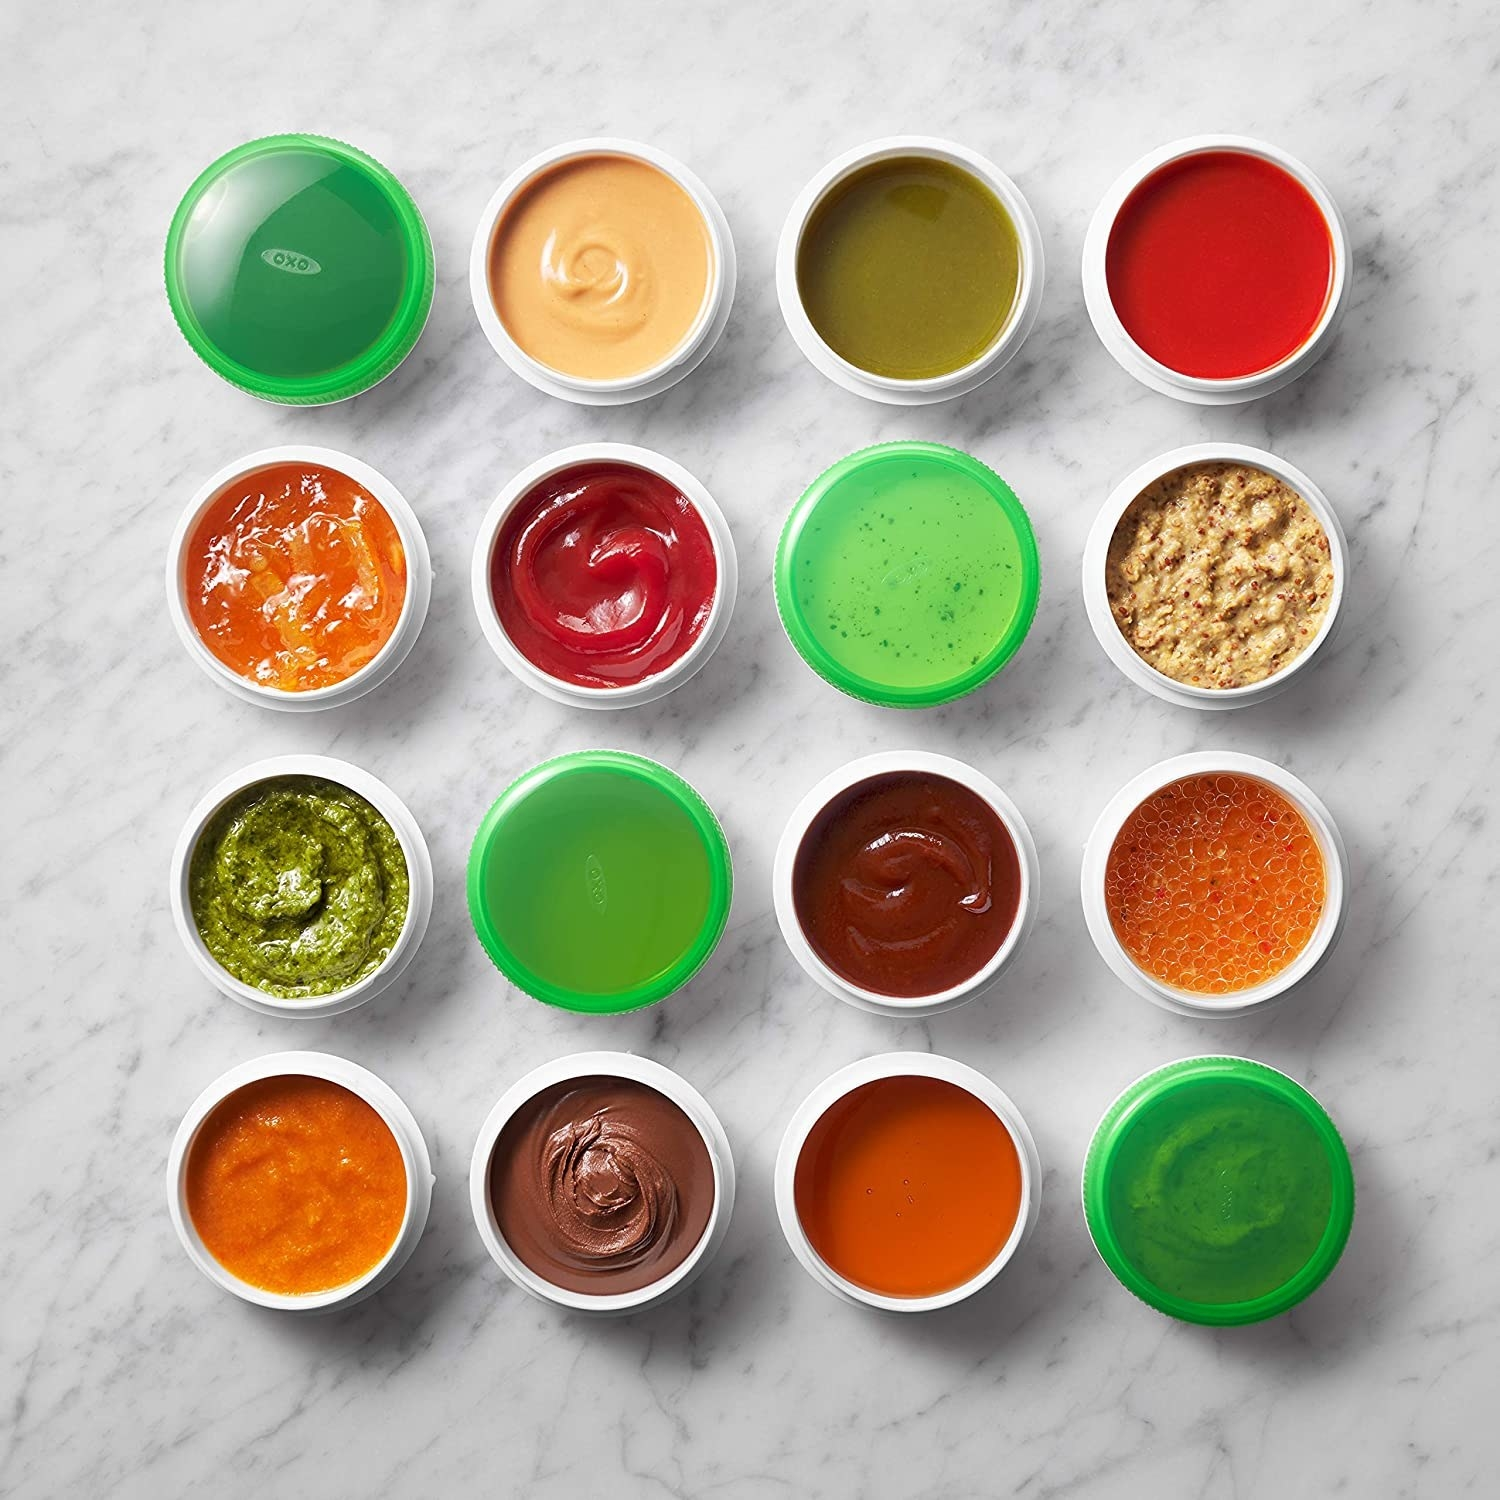 Several condiment cups filled with various dips and sauces